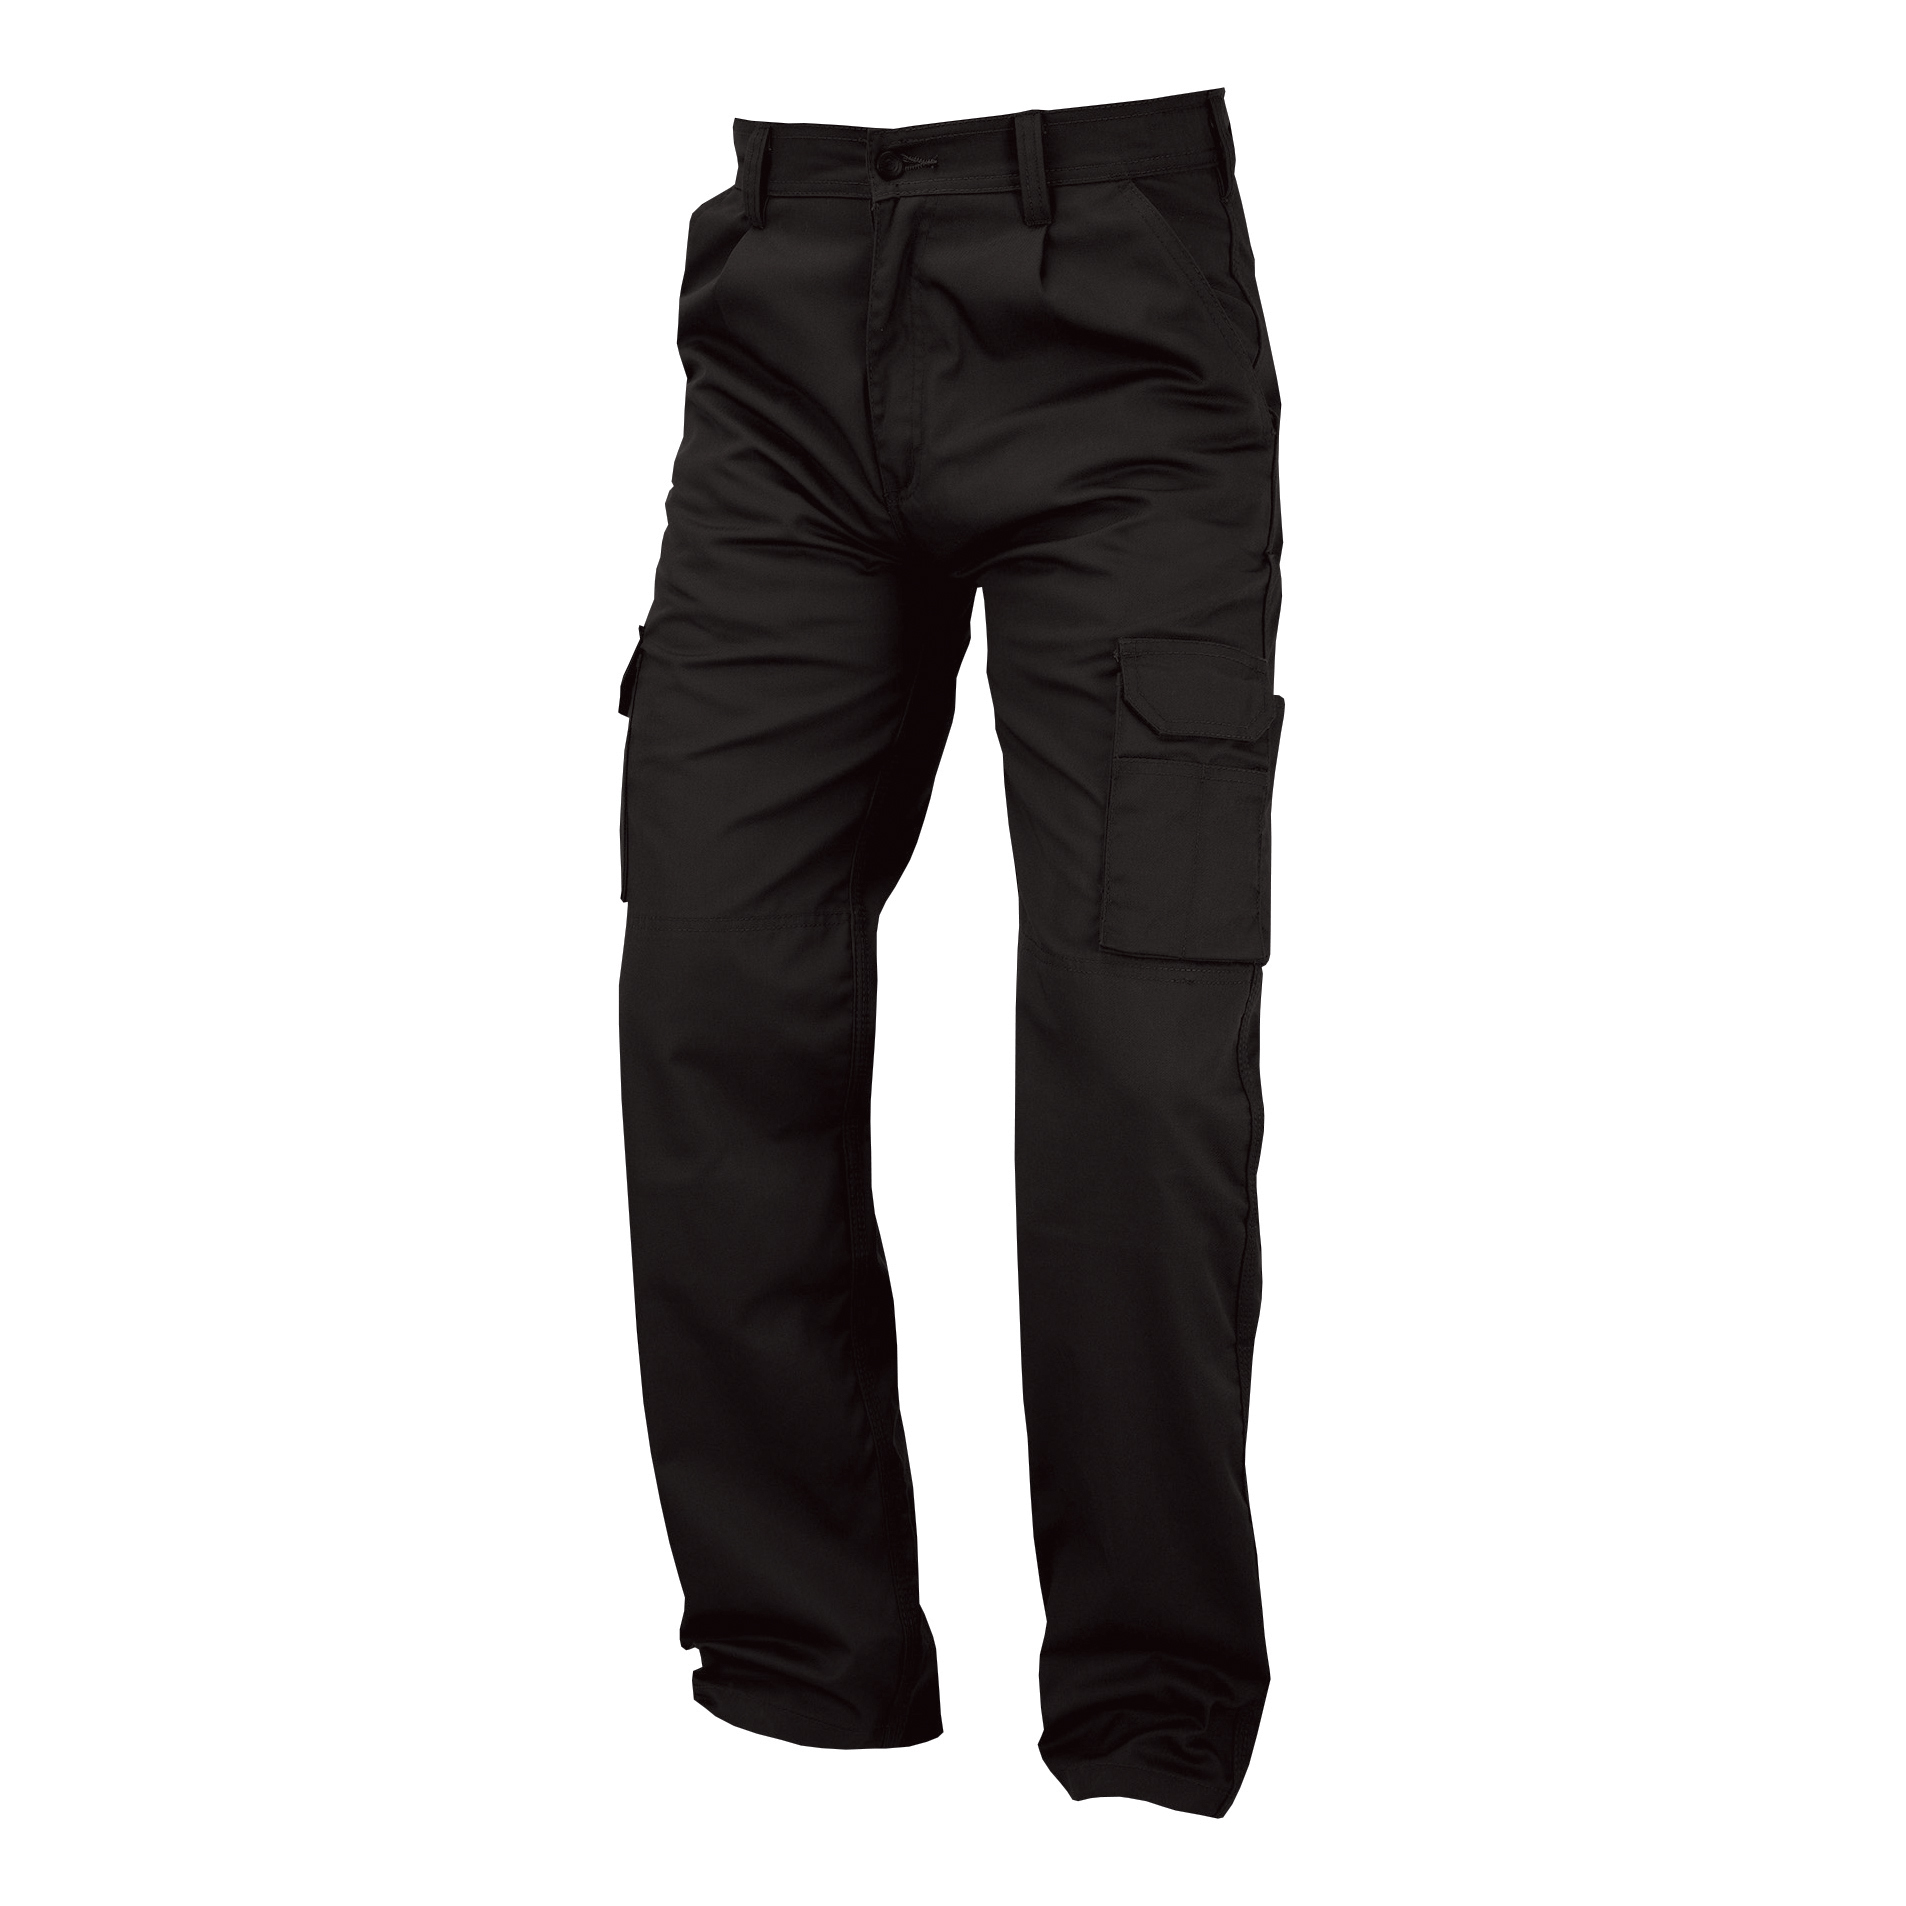 Combat Trousers Polycotton with Pockets Tall Black 32inch 1-3 Days Lead Time